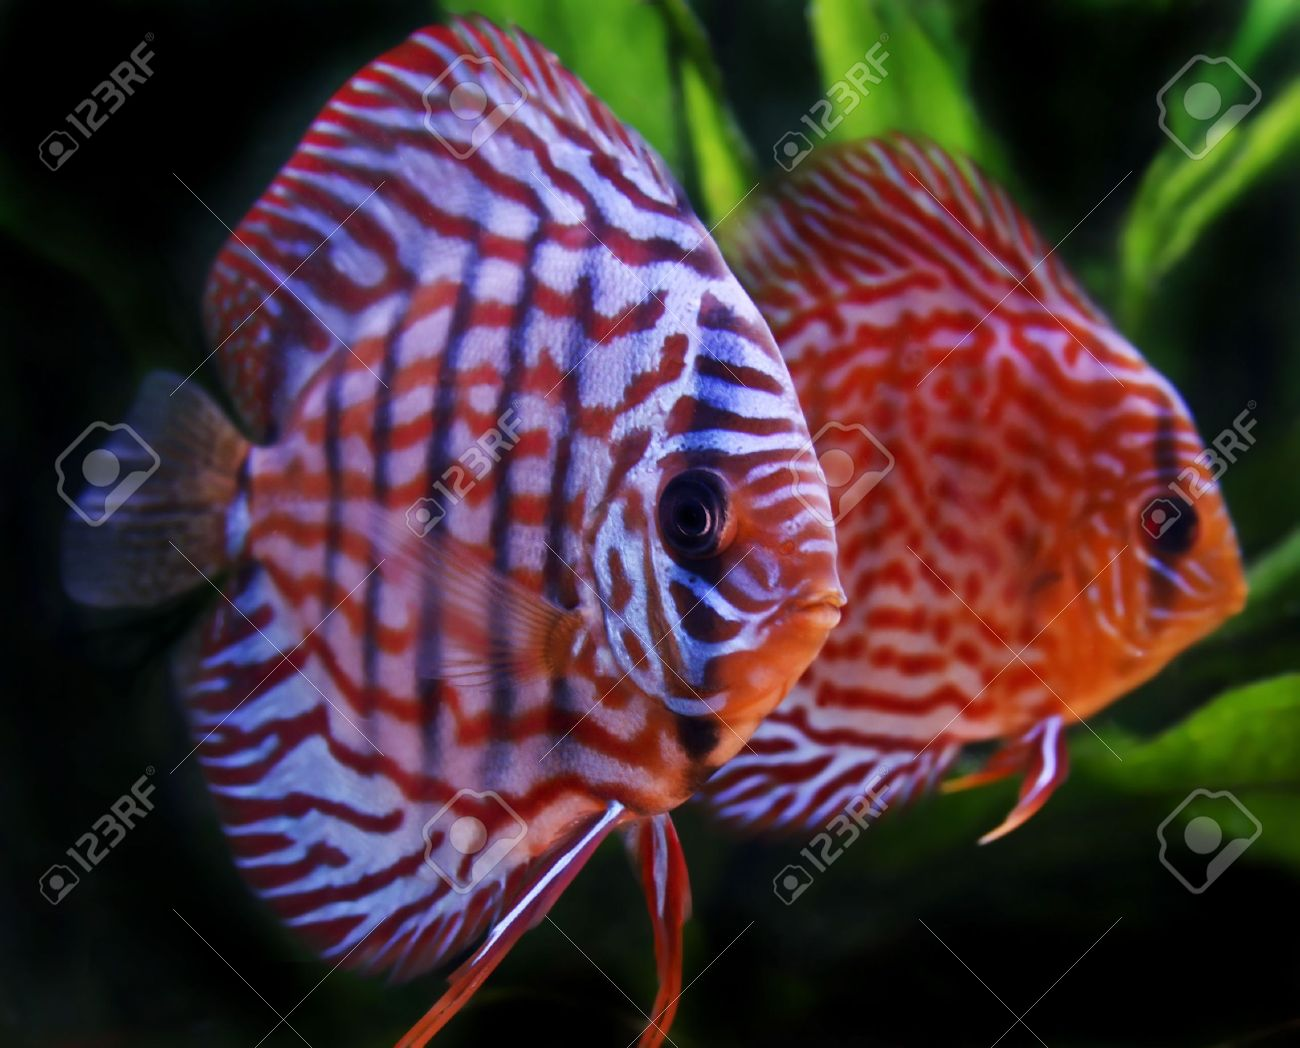 Close Up On Colorful Discus Fish Stock Photo, Picture And Royalty ...